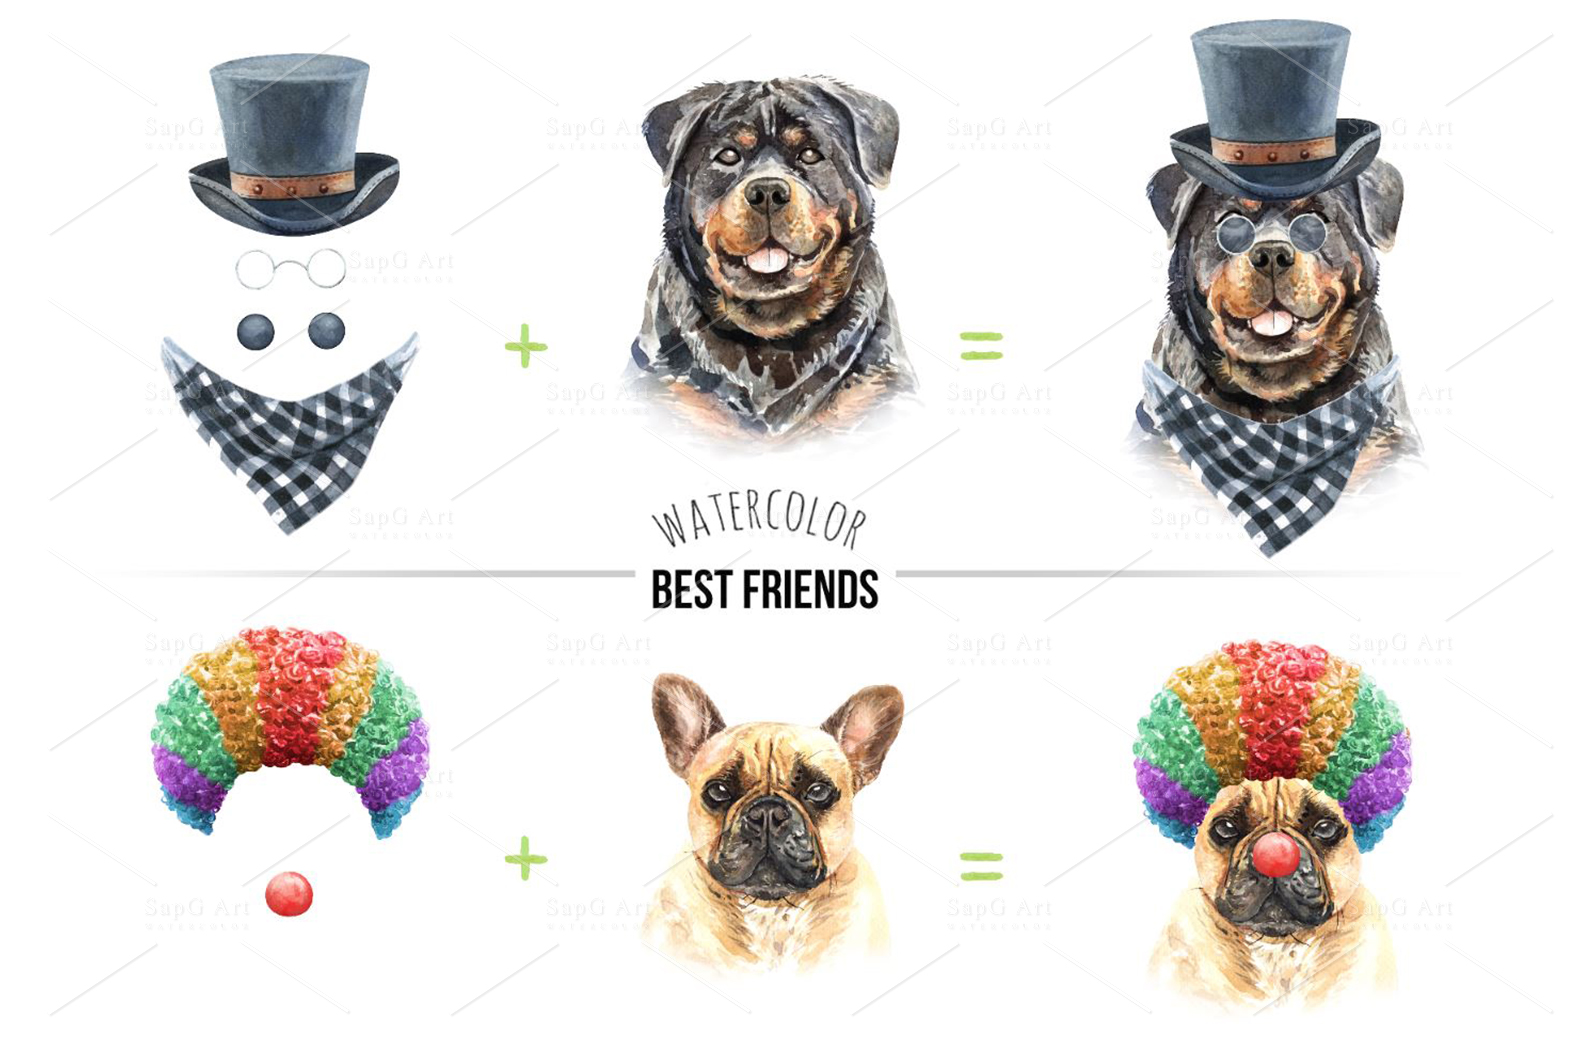 Dogs and accessories watercolor clipart, Pets clip arts SetB example image 4